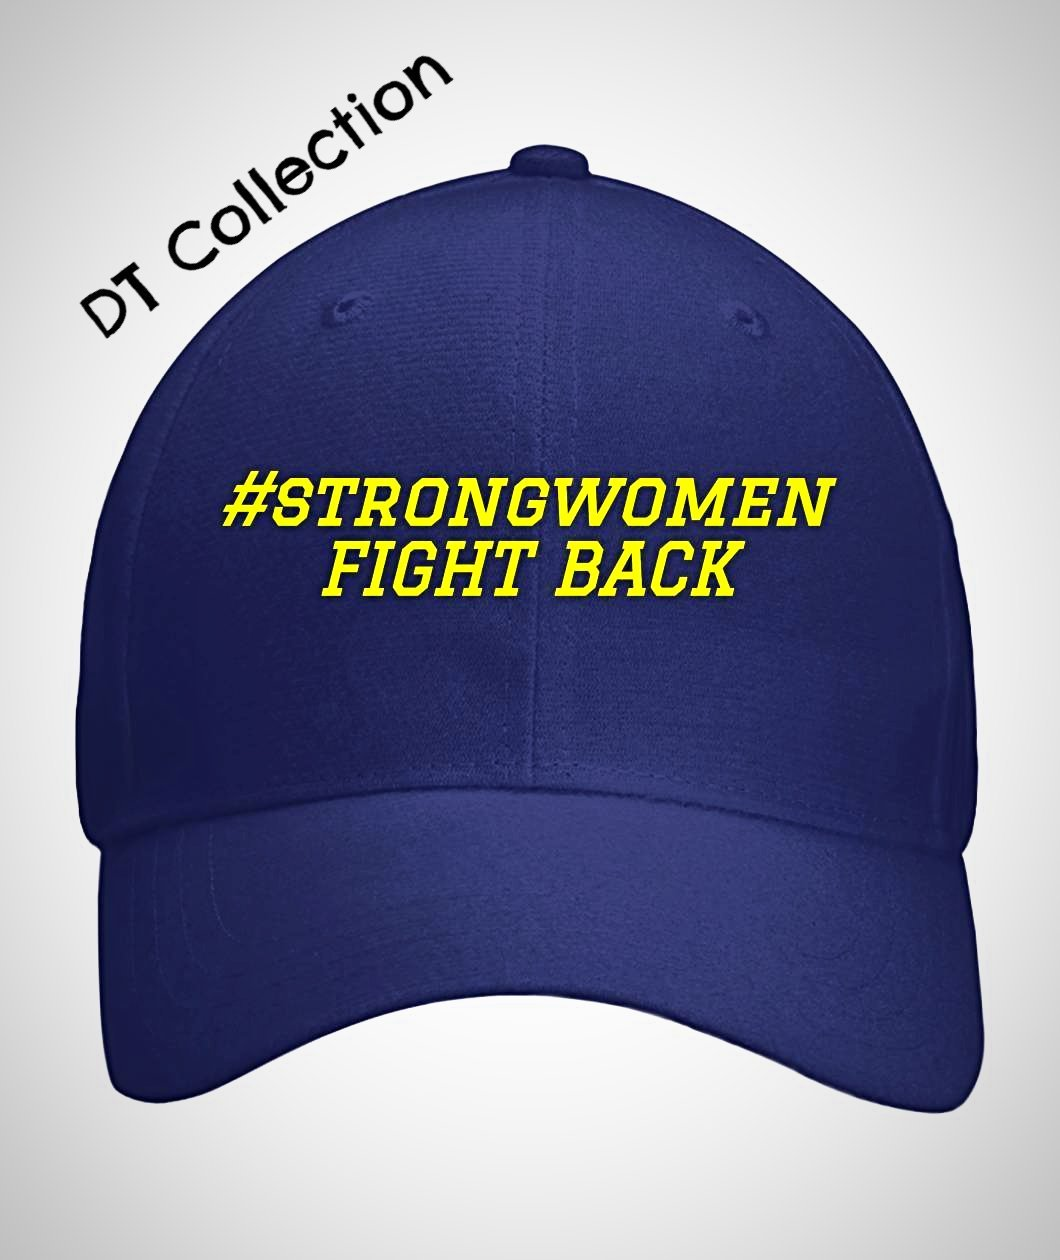 #strongwomen FIGHT BACK Curved Bill Velcro Strap